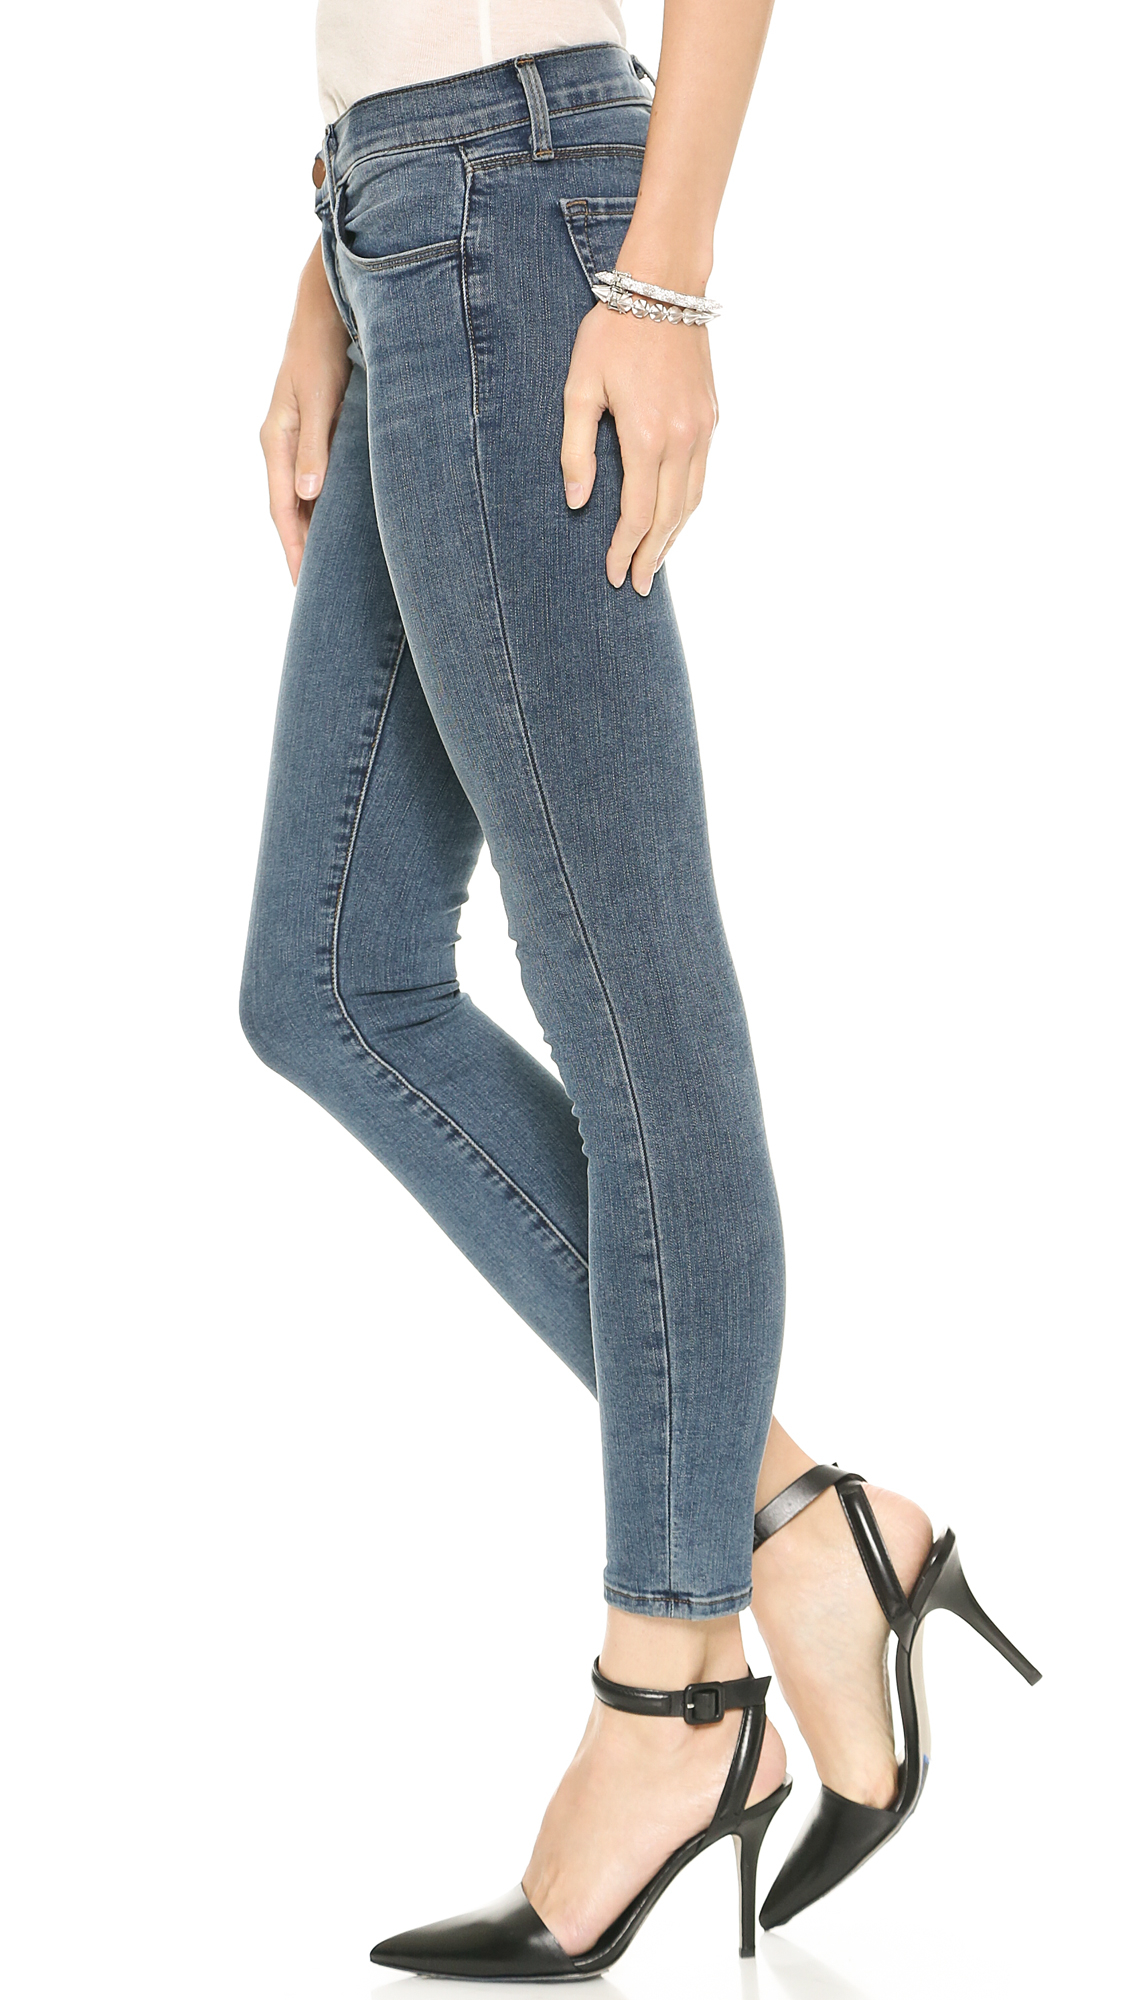 J brand 835 Mid Rise Photo Ready Cropped Skinny Jeans ... - photo #43